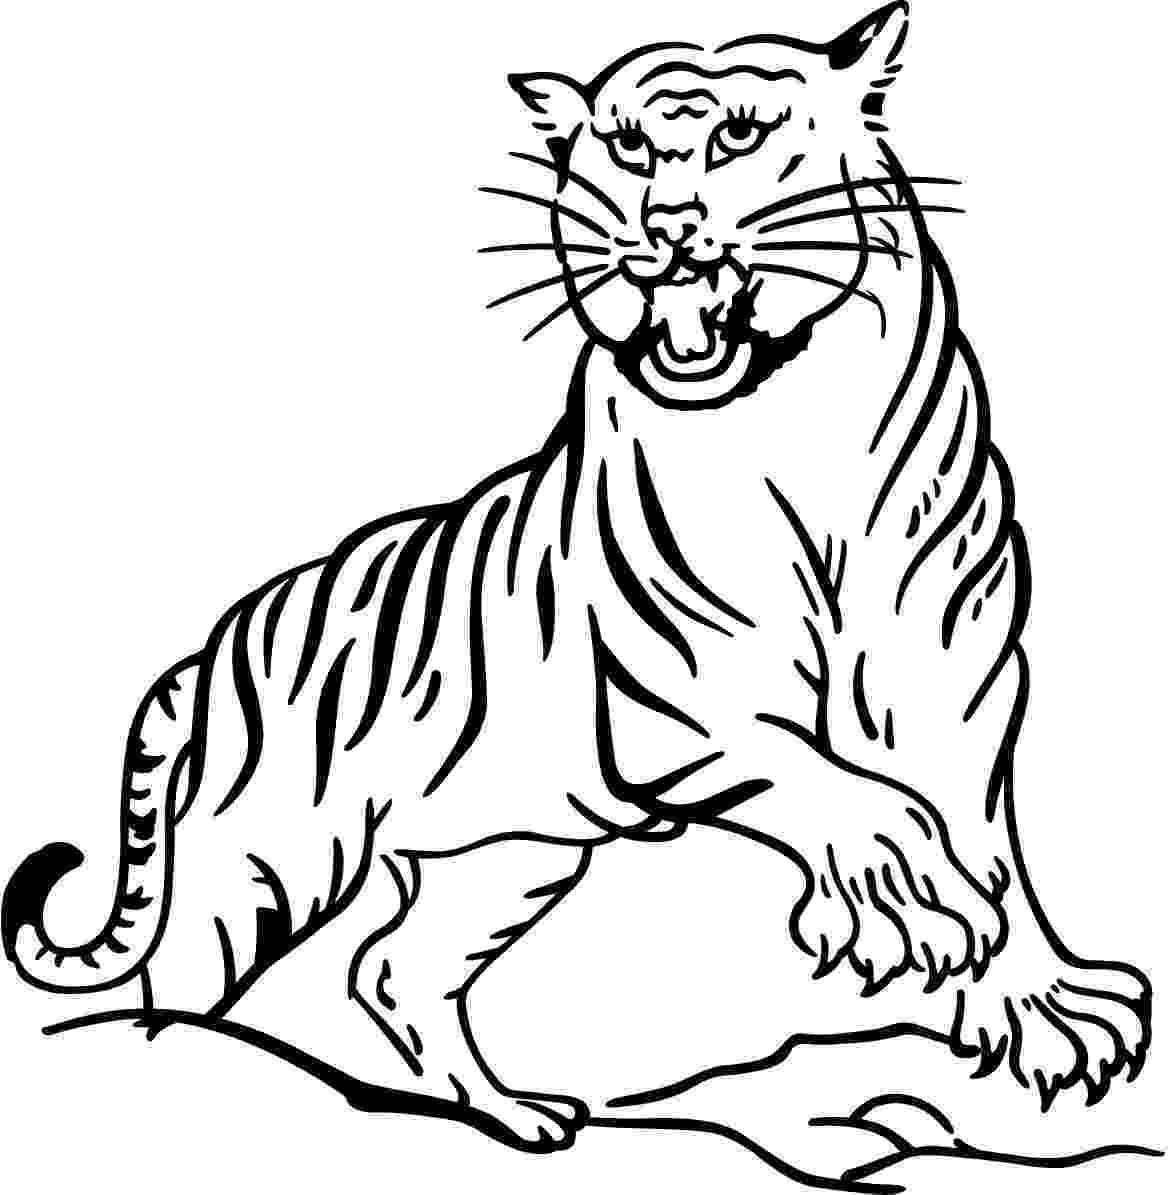 tiger to color free printable tiger coloring pages for kids color to tiger